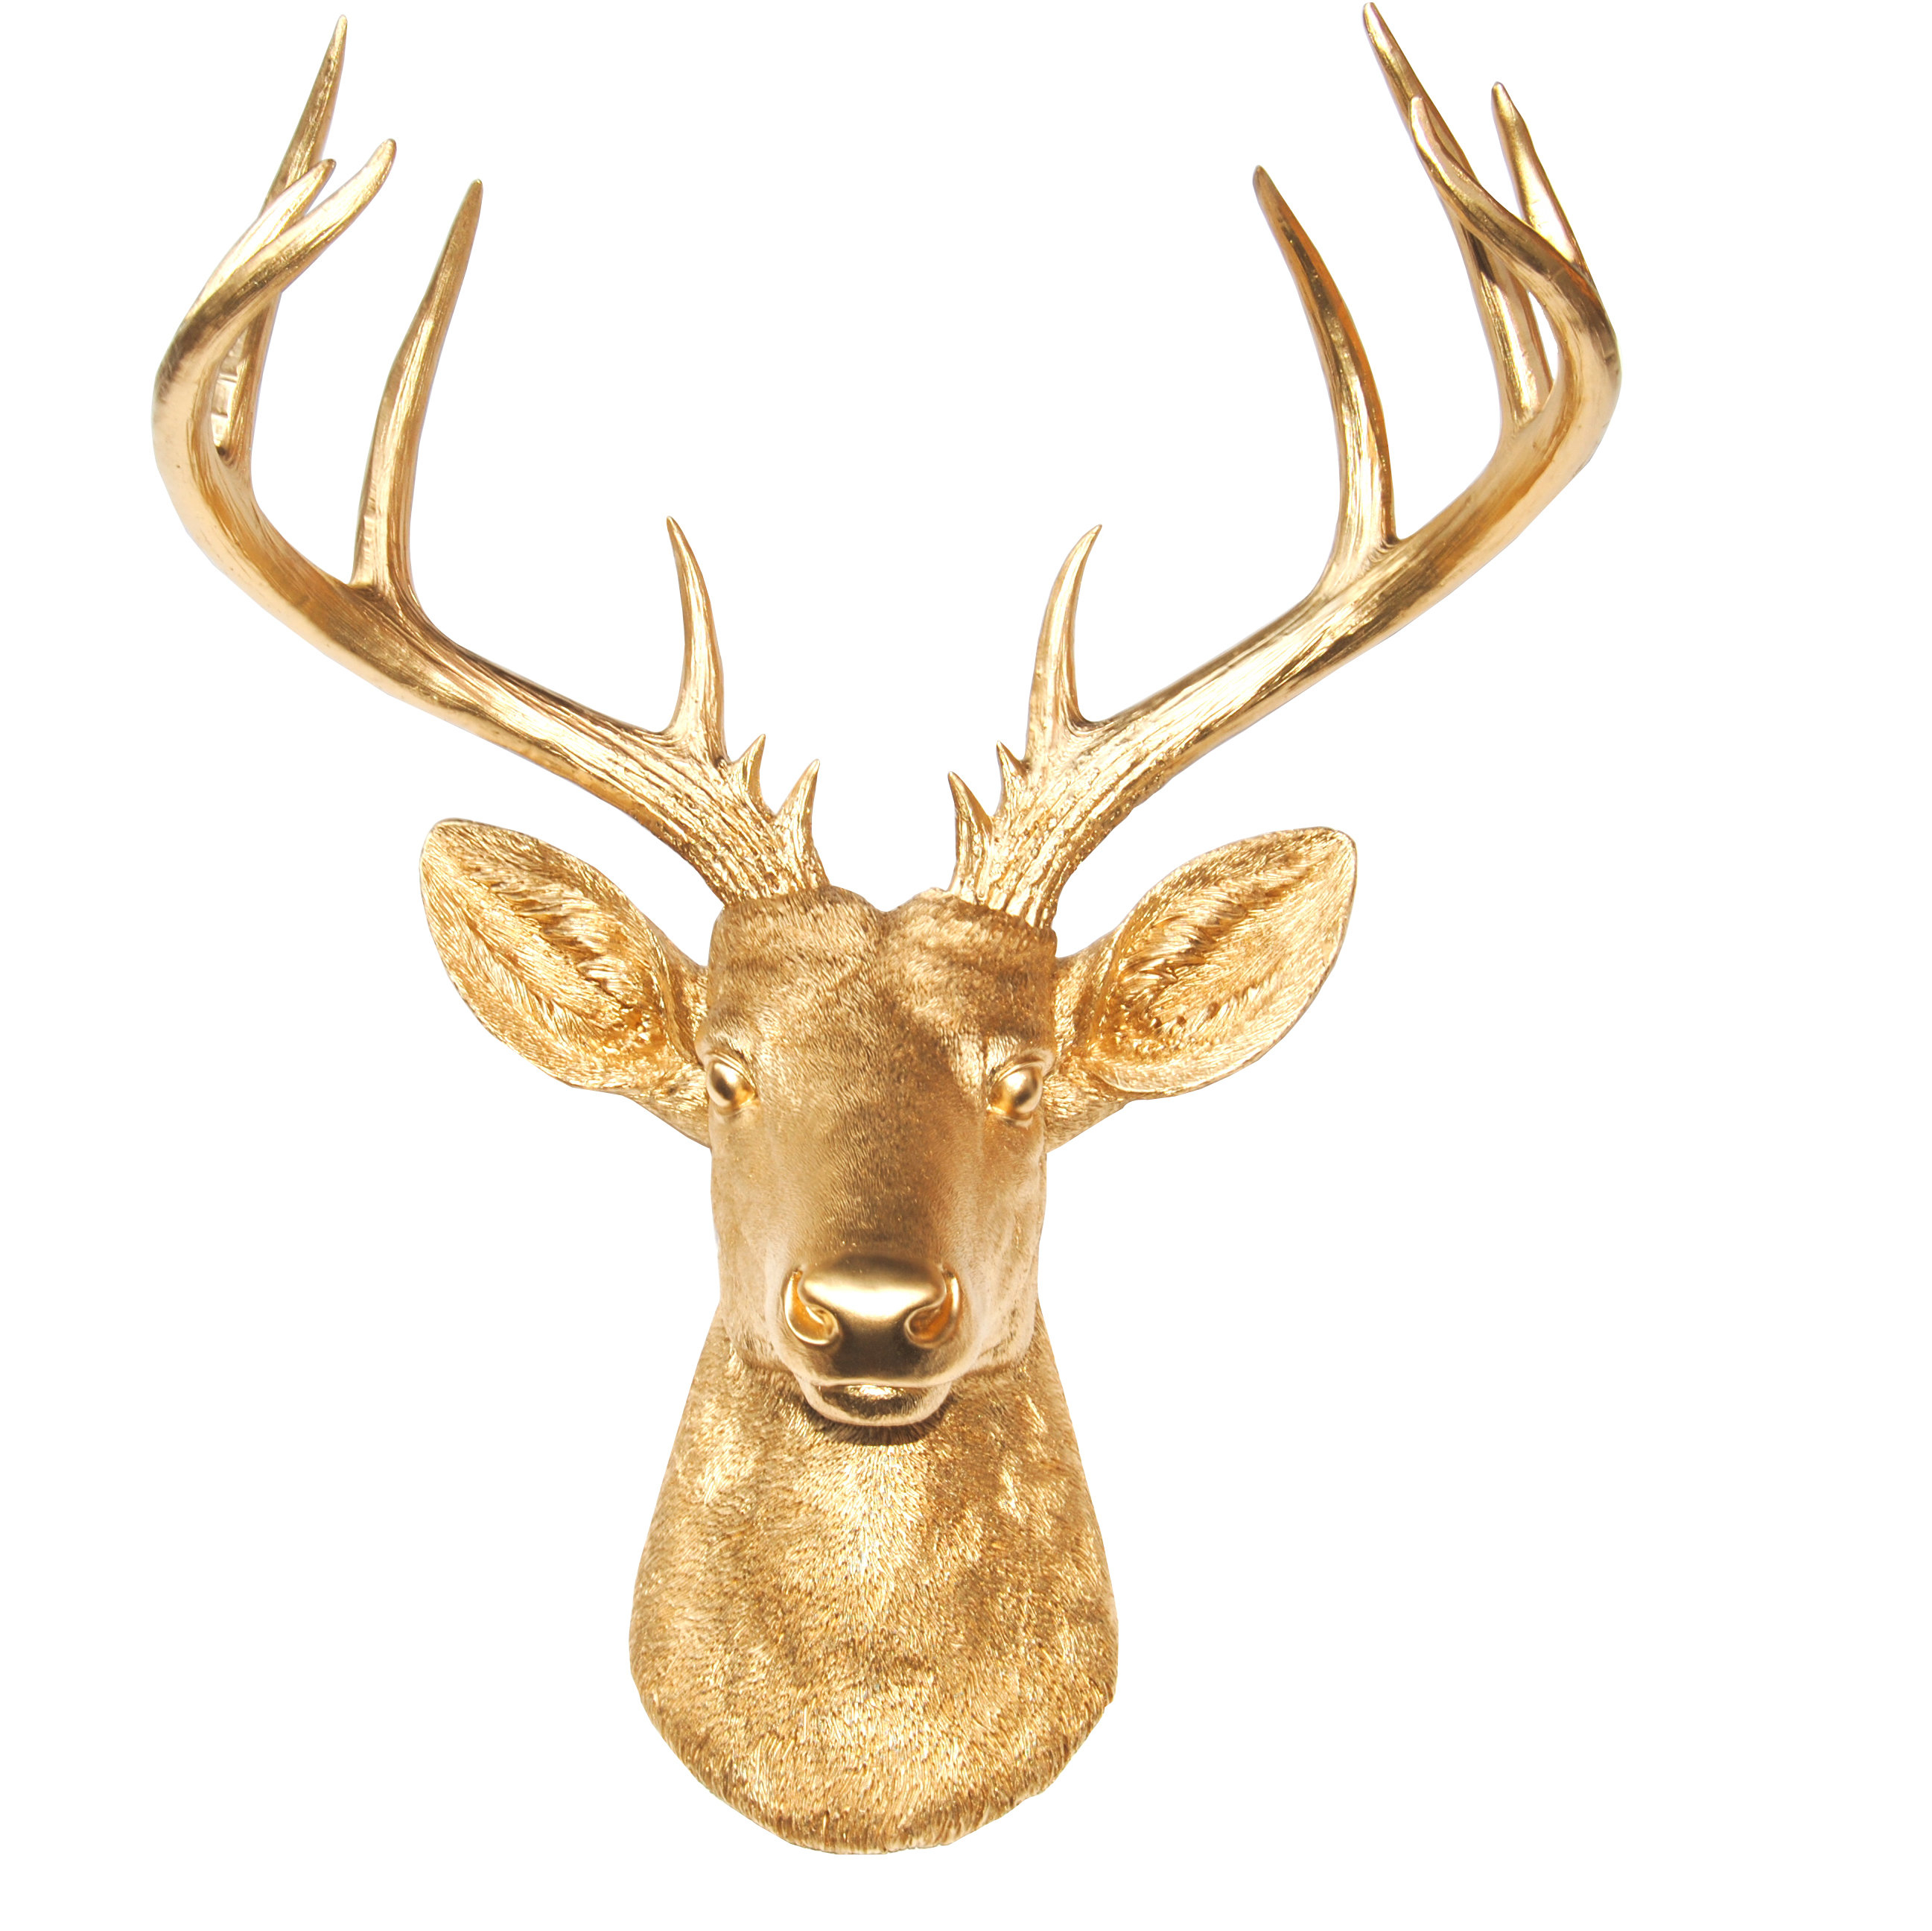 Large Deer Head Faux Taxidermy Wall Décor Within Large Deer Head Faux Taxidermy Wall Decor (View 2 of 30)